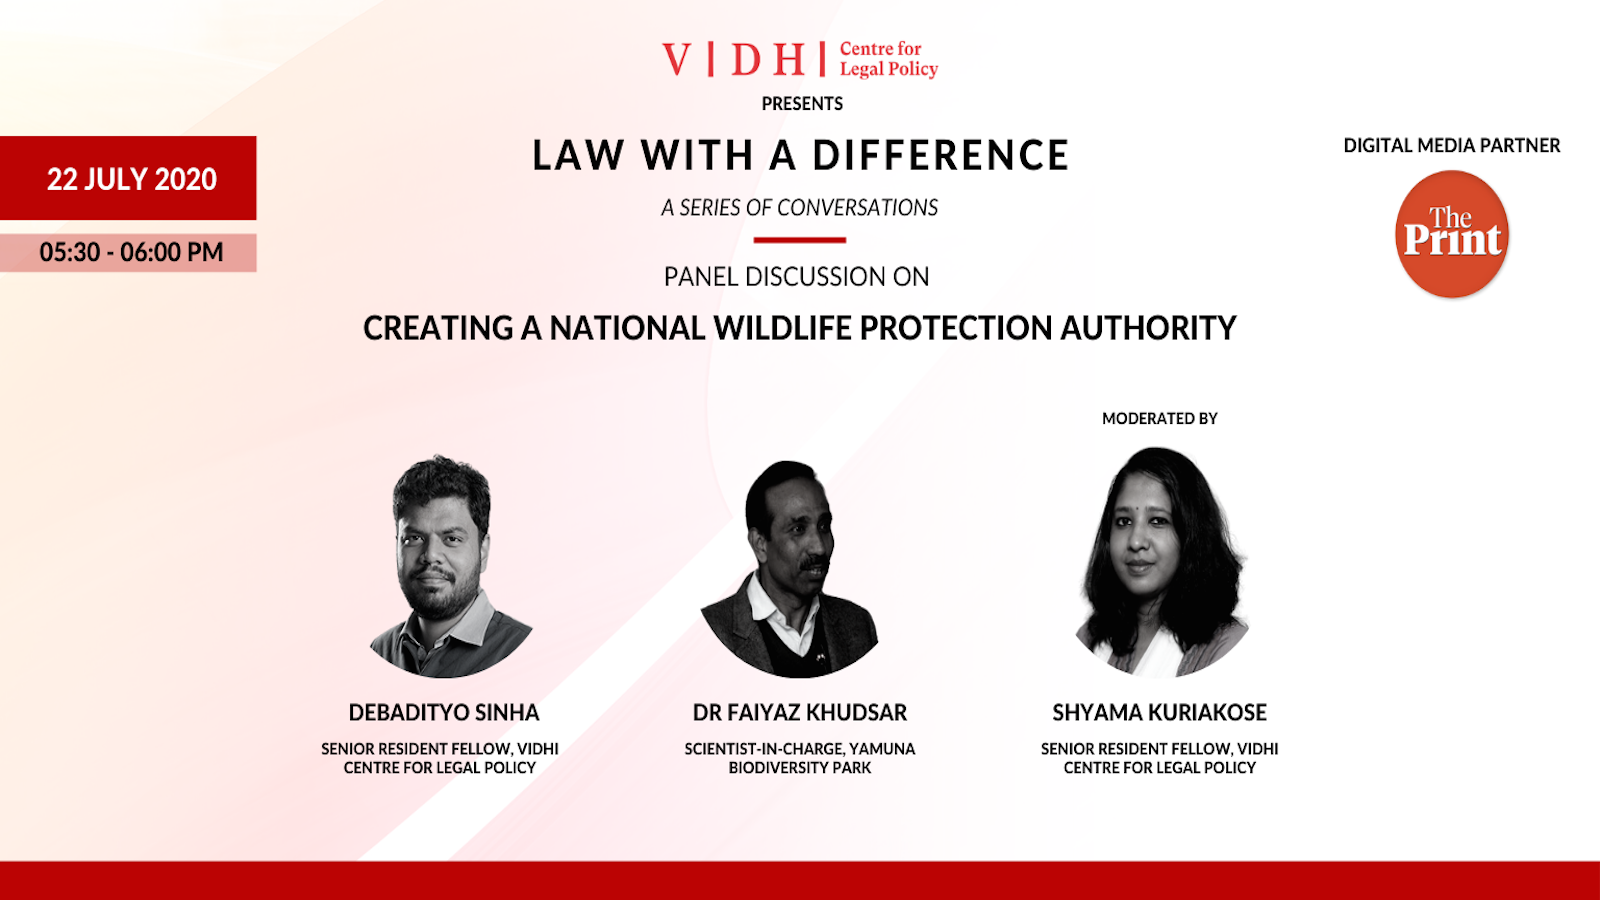 Panel discussion on 'Creating a National Wildlife Protection Authority'